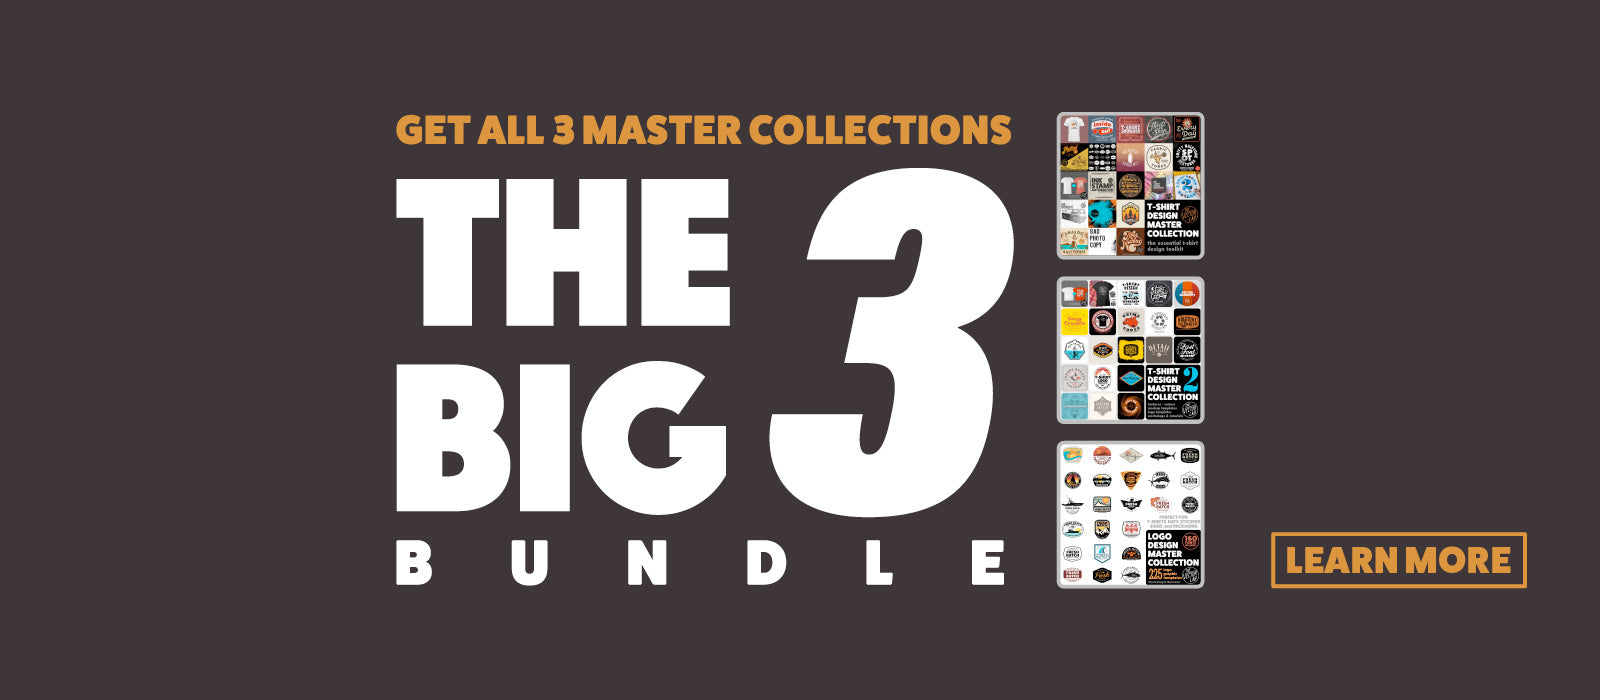 Big 3 Bundle - Master Collections for T-Shirt Design